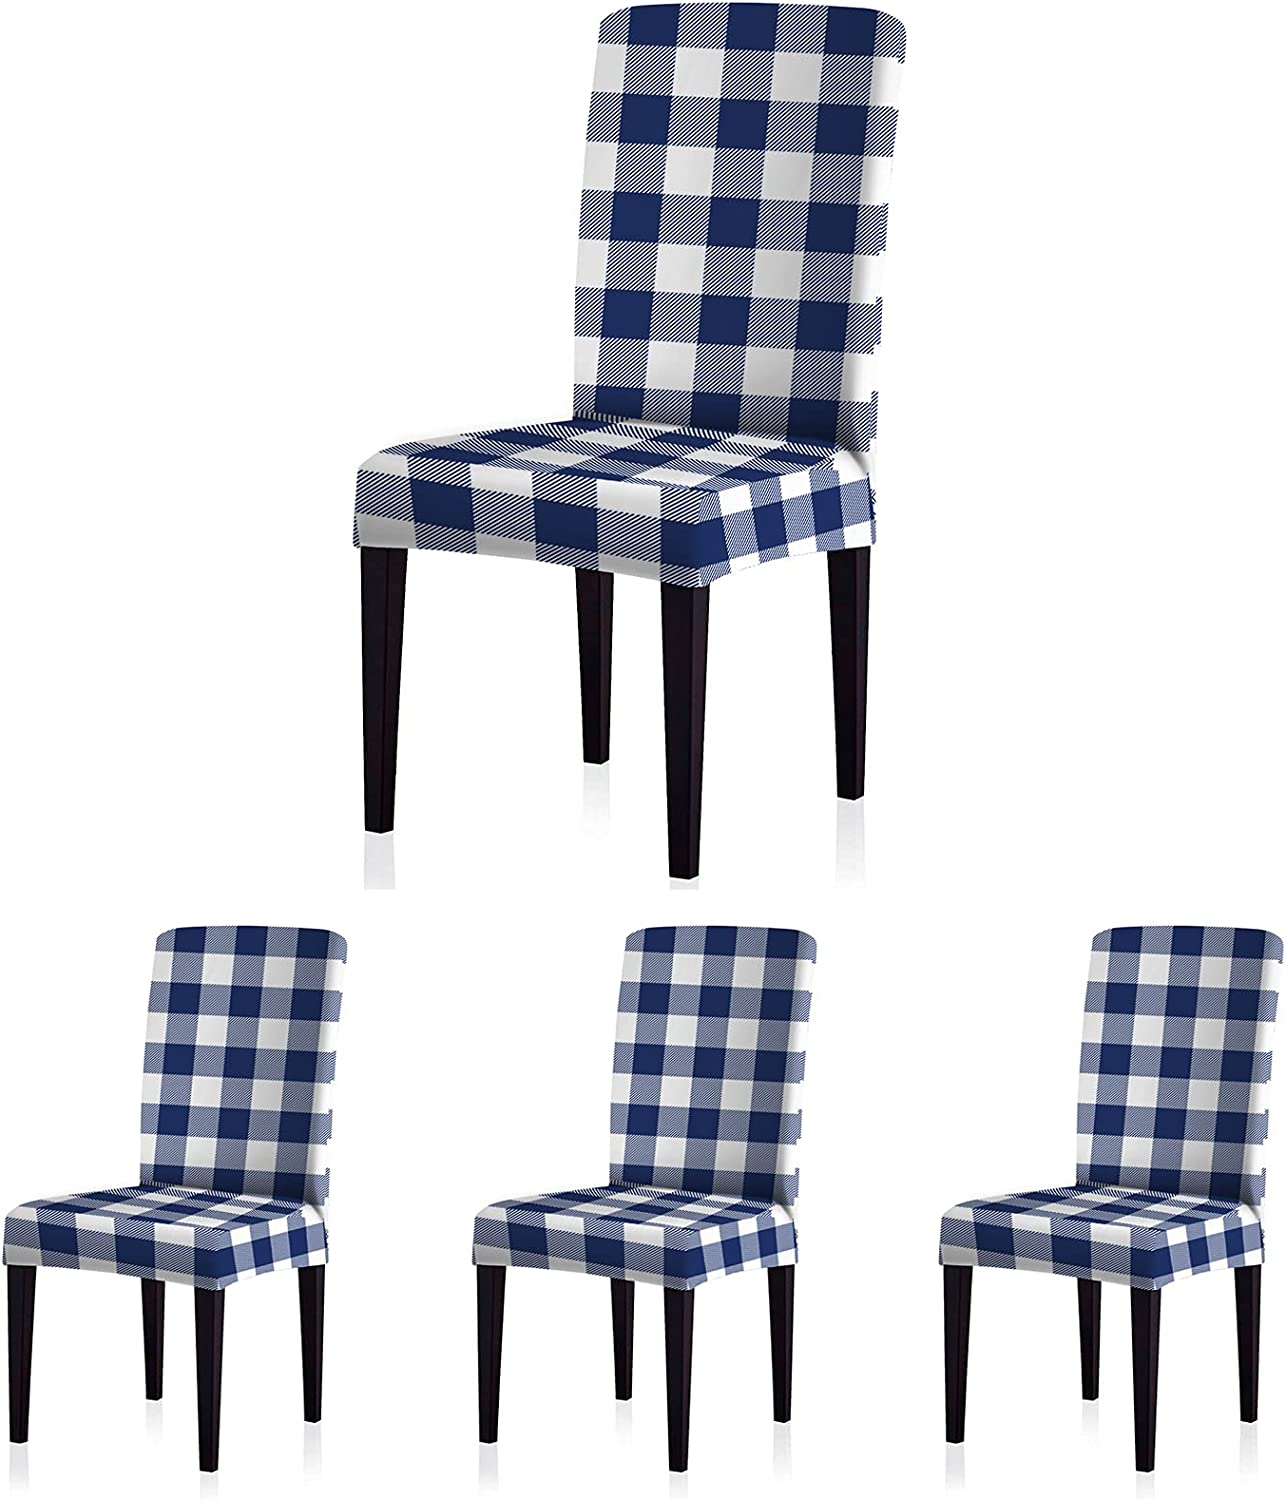 ColorBird Buffalo Tampa Mall Check Spandex Slipcovers 25% OFF Unive Removable Chair